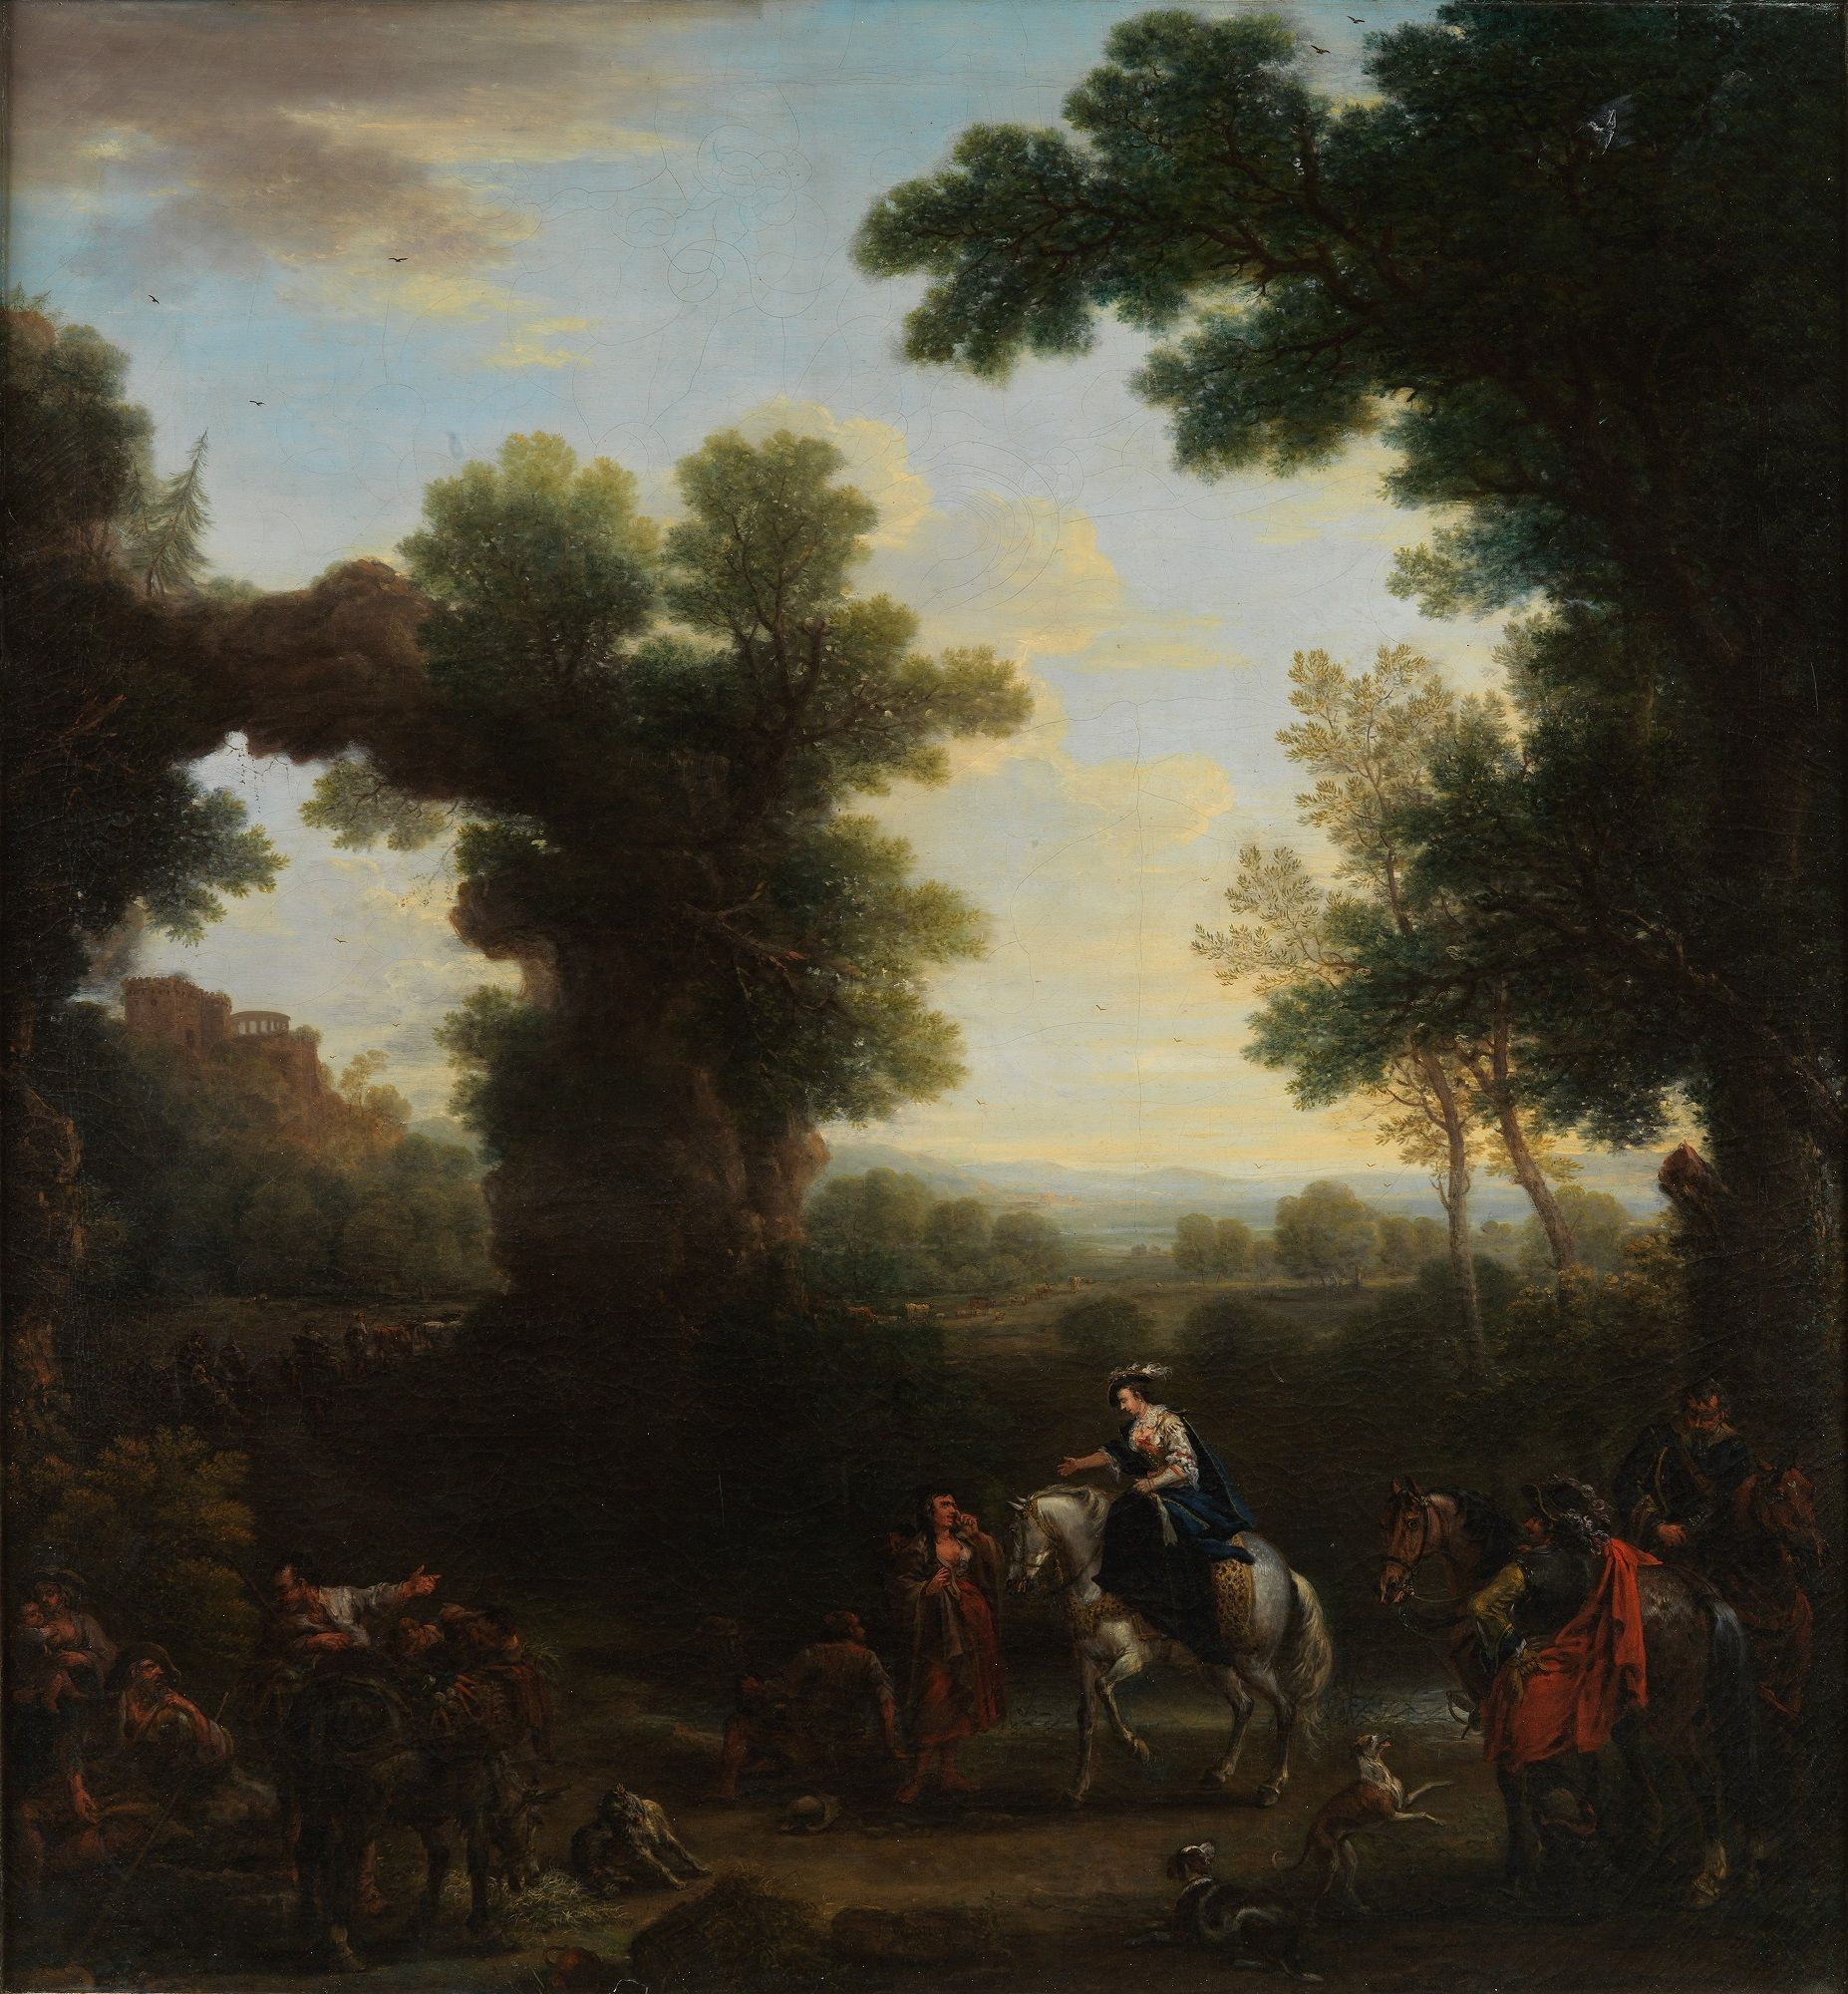 Classical Landscape with Gypsies | John Wootton | Oil Painting